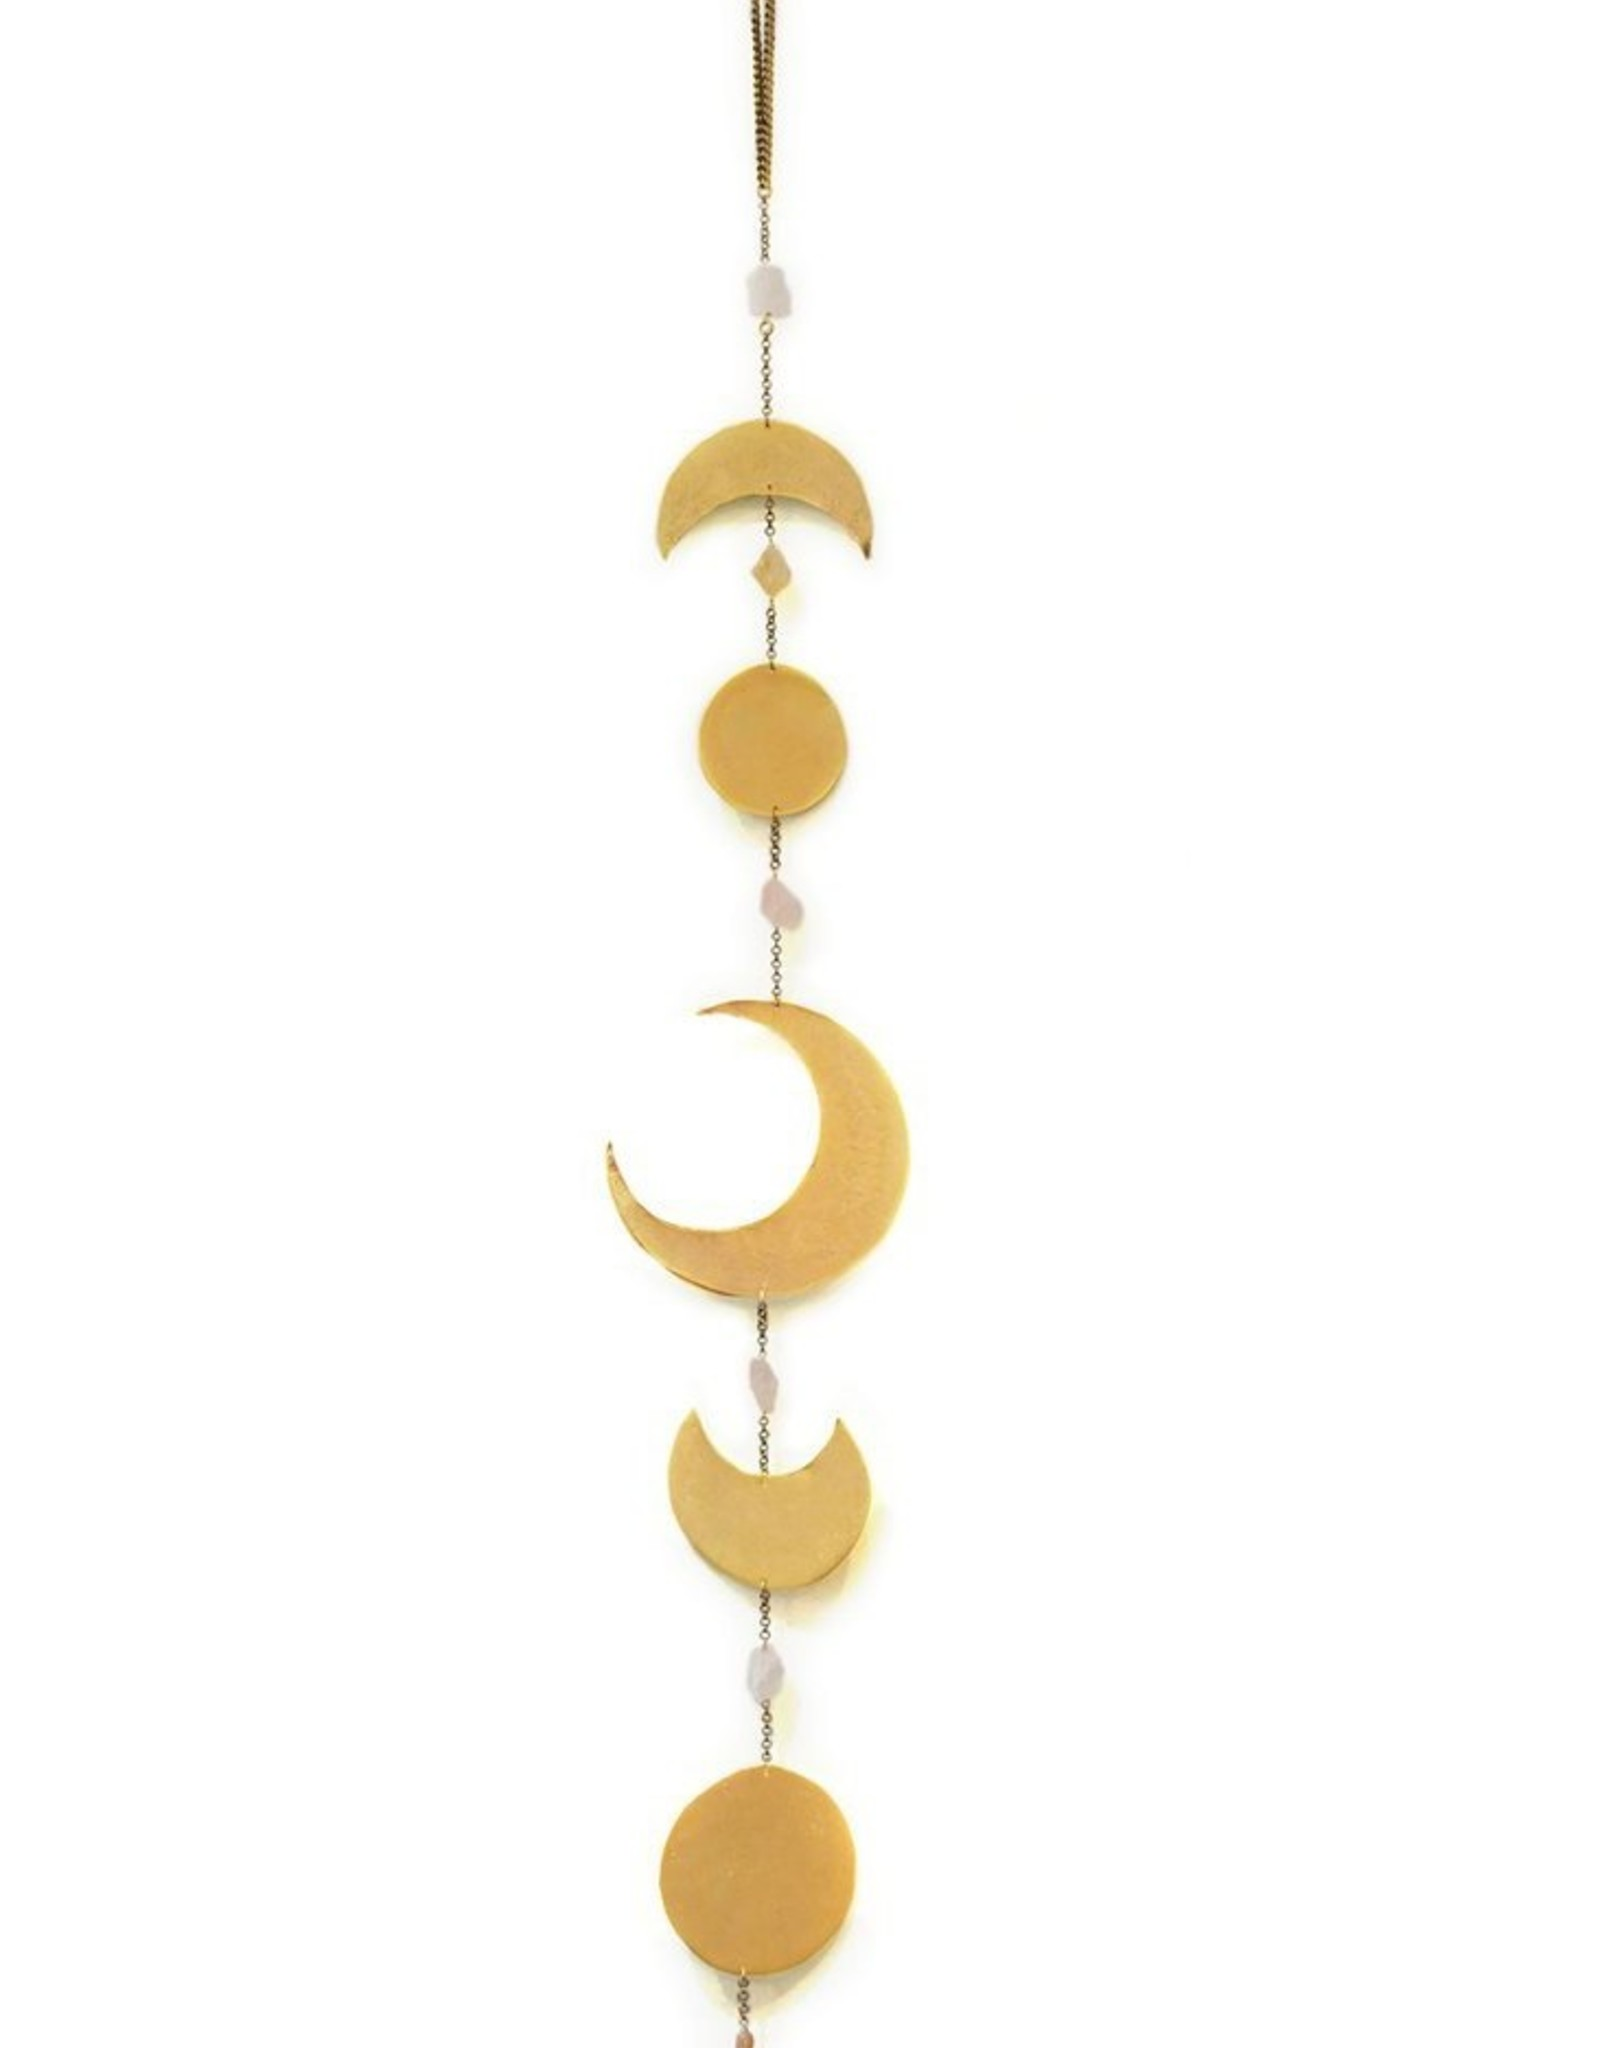 Ariana Ost Moon Phase Wall Hanging